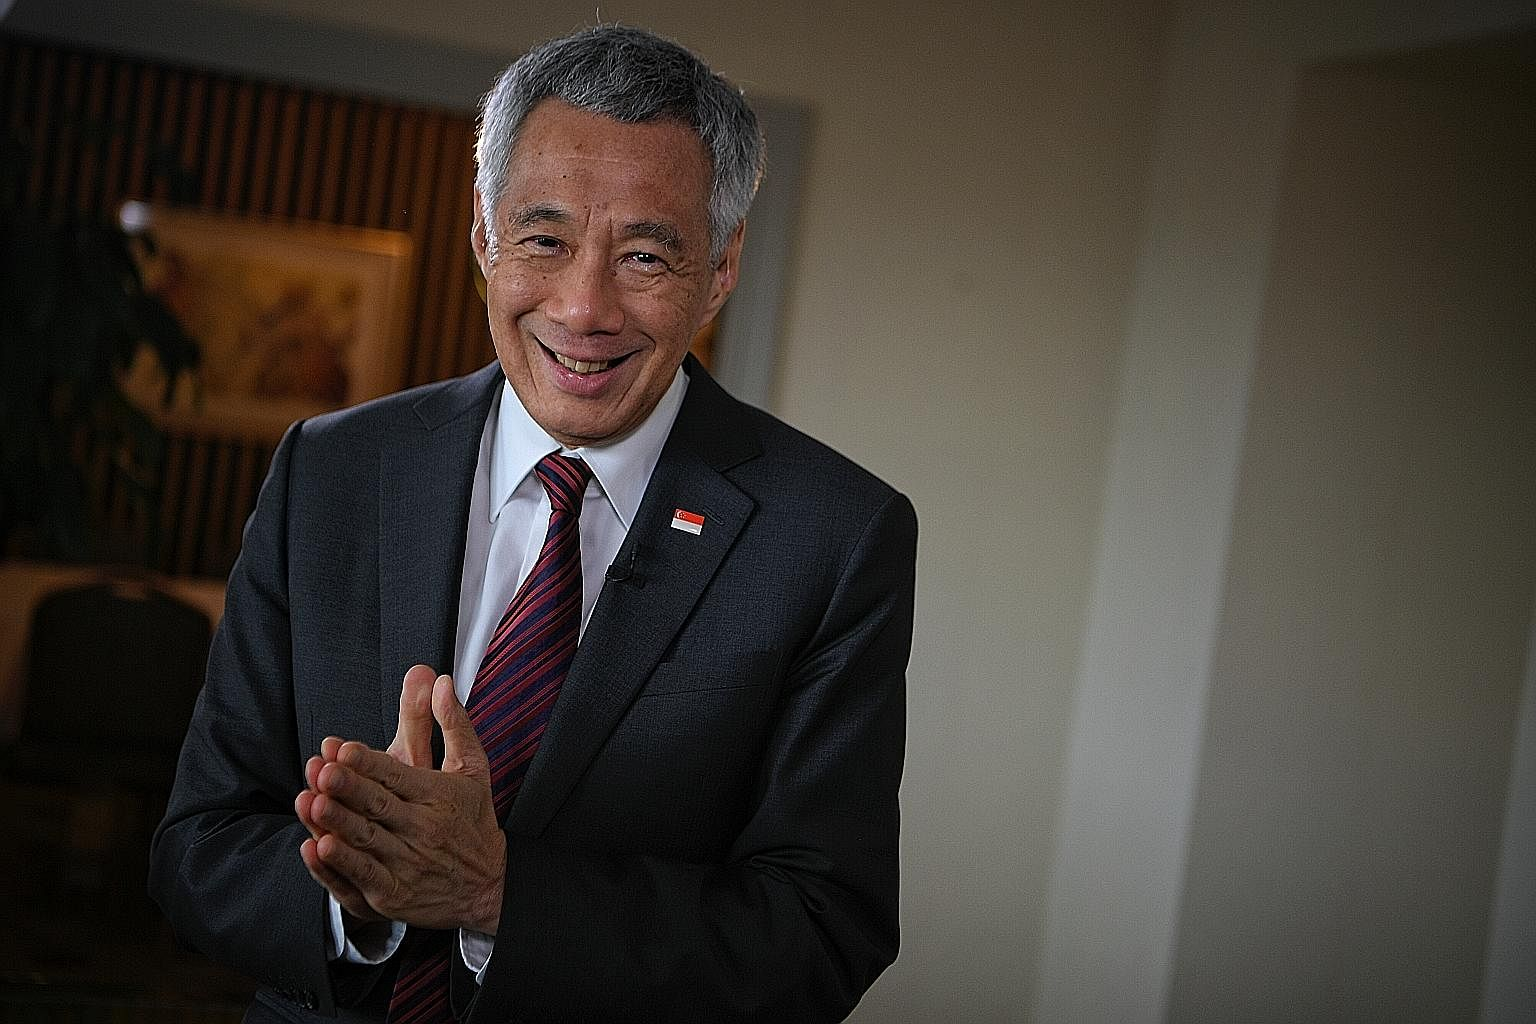 The Kampung Admiralty project was recently named the 2018 World Building of the Year at the World Architecture Festival. Prime Minister Lee Hsien Loong says the Government is focused on people's concerns, and working with citizens to create a better